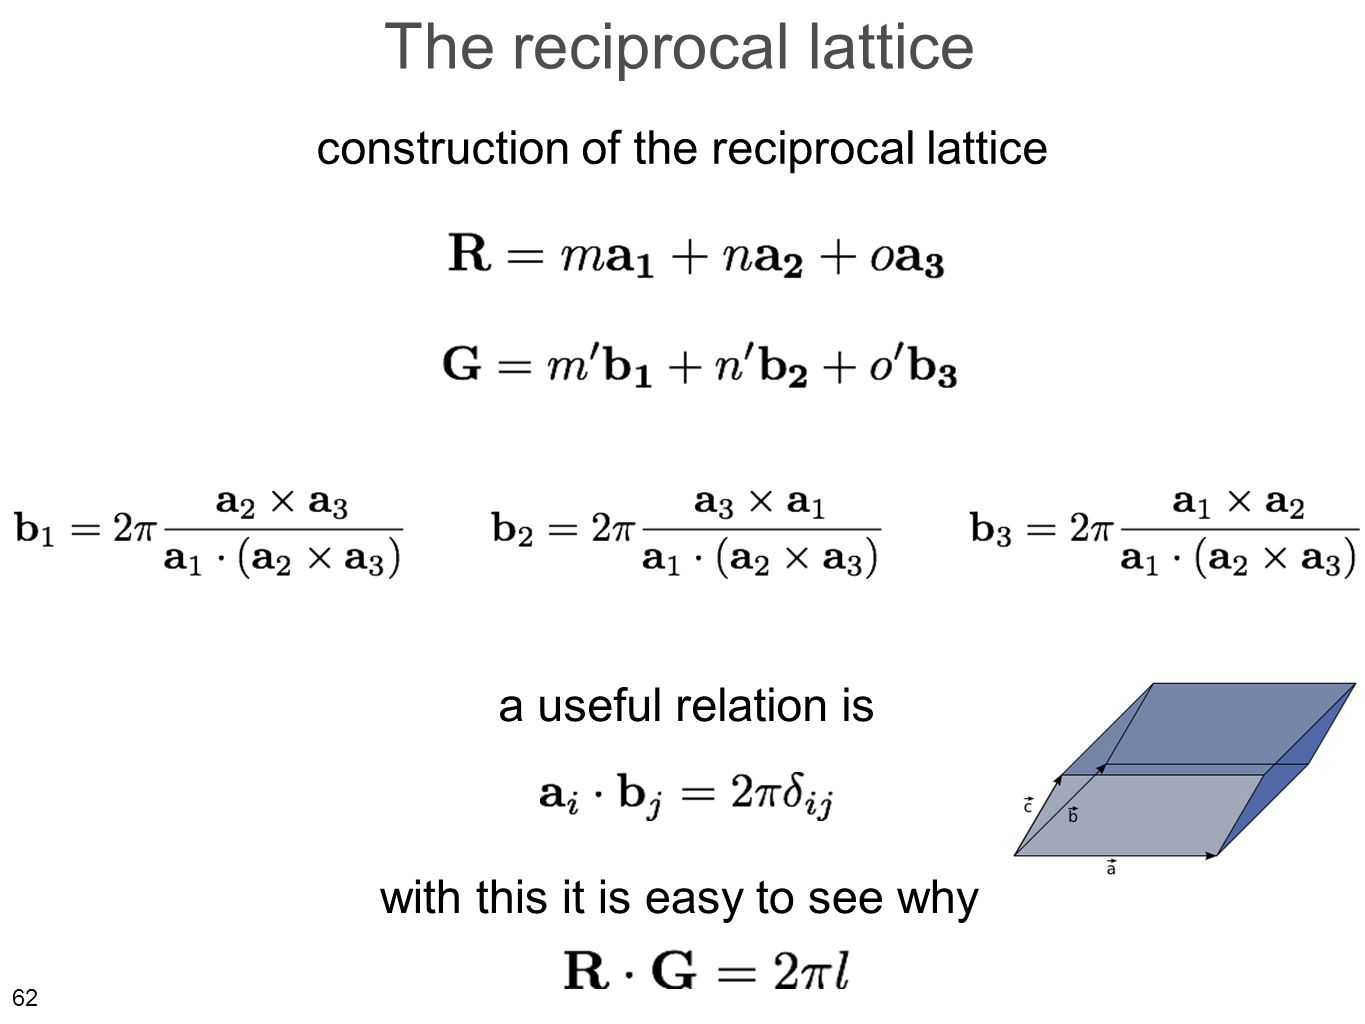 62 The reciprocal lattice construction of the reciprocal lattice with this it is easy to see why a useful relation is